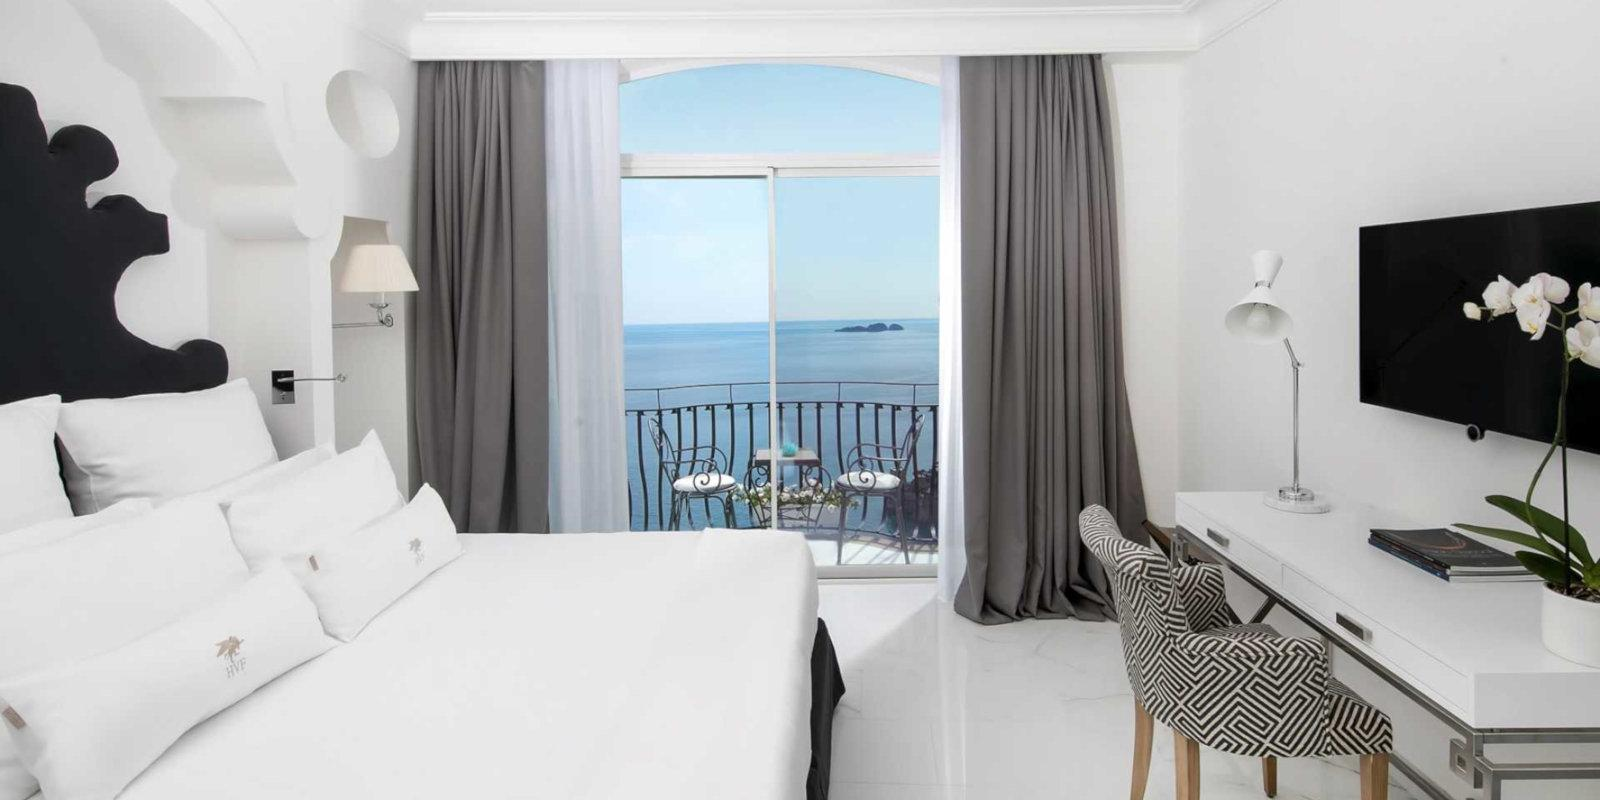 Gay Amalfi Coast guide - Have a truly romantic stay at the gorgeous Hotel Villa Franca in Positano